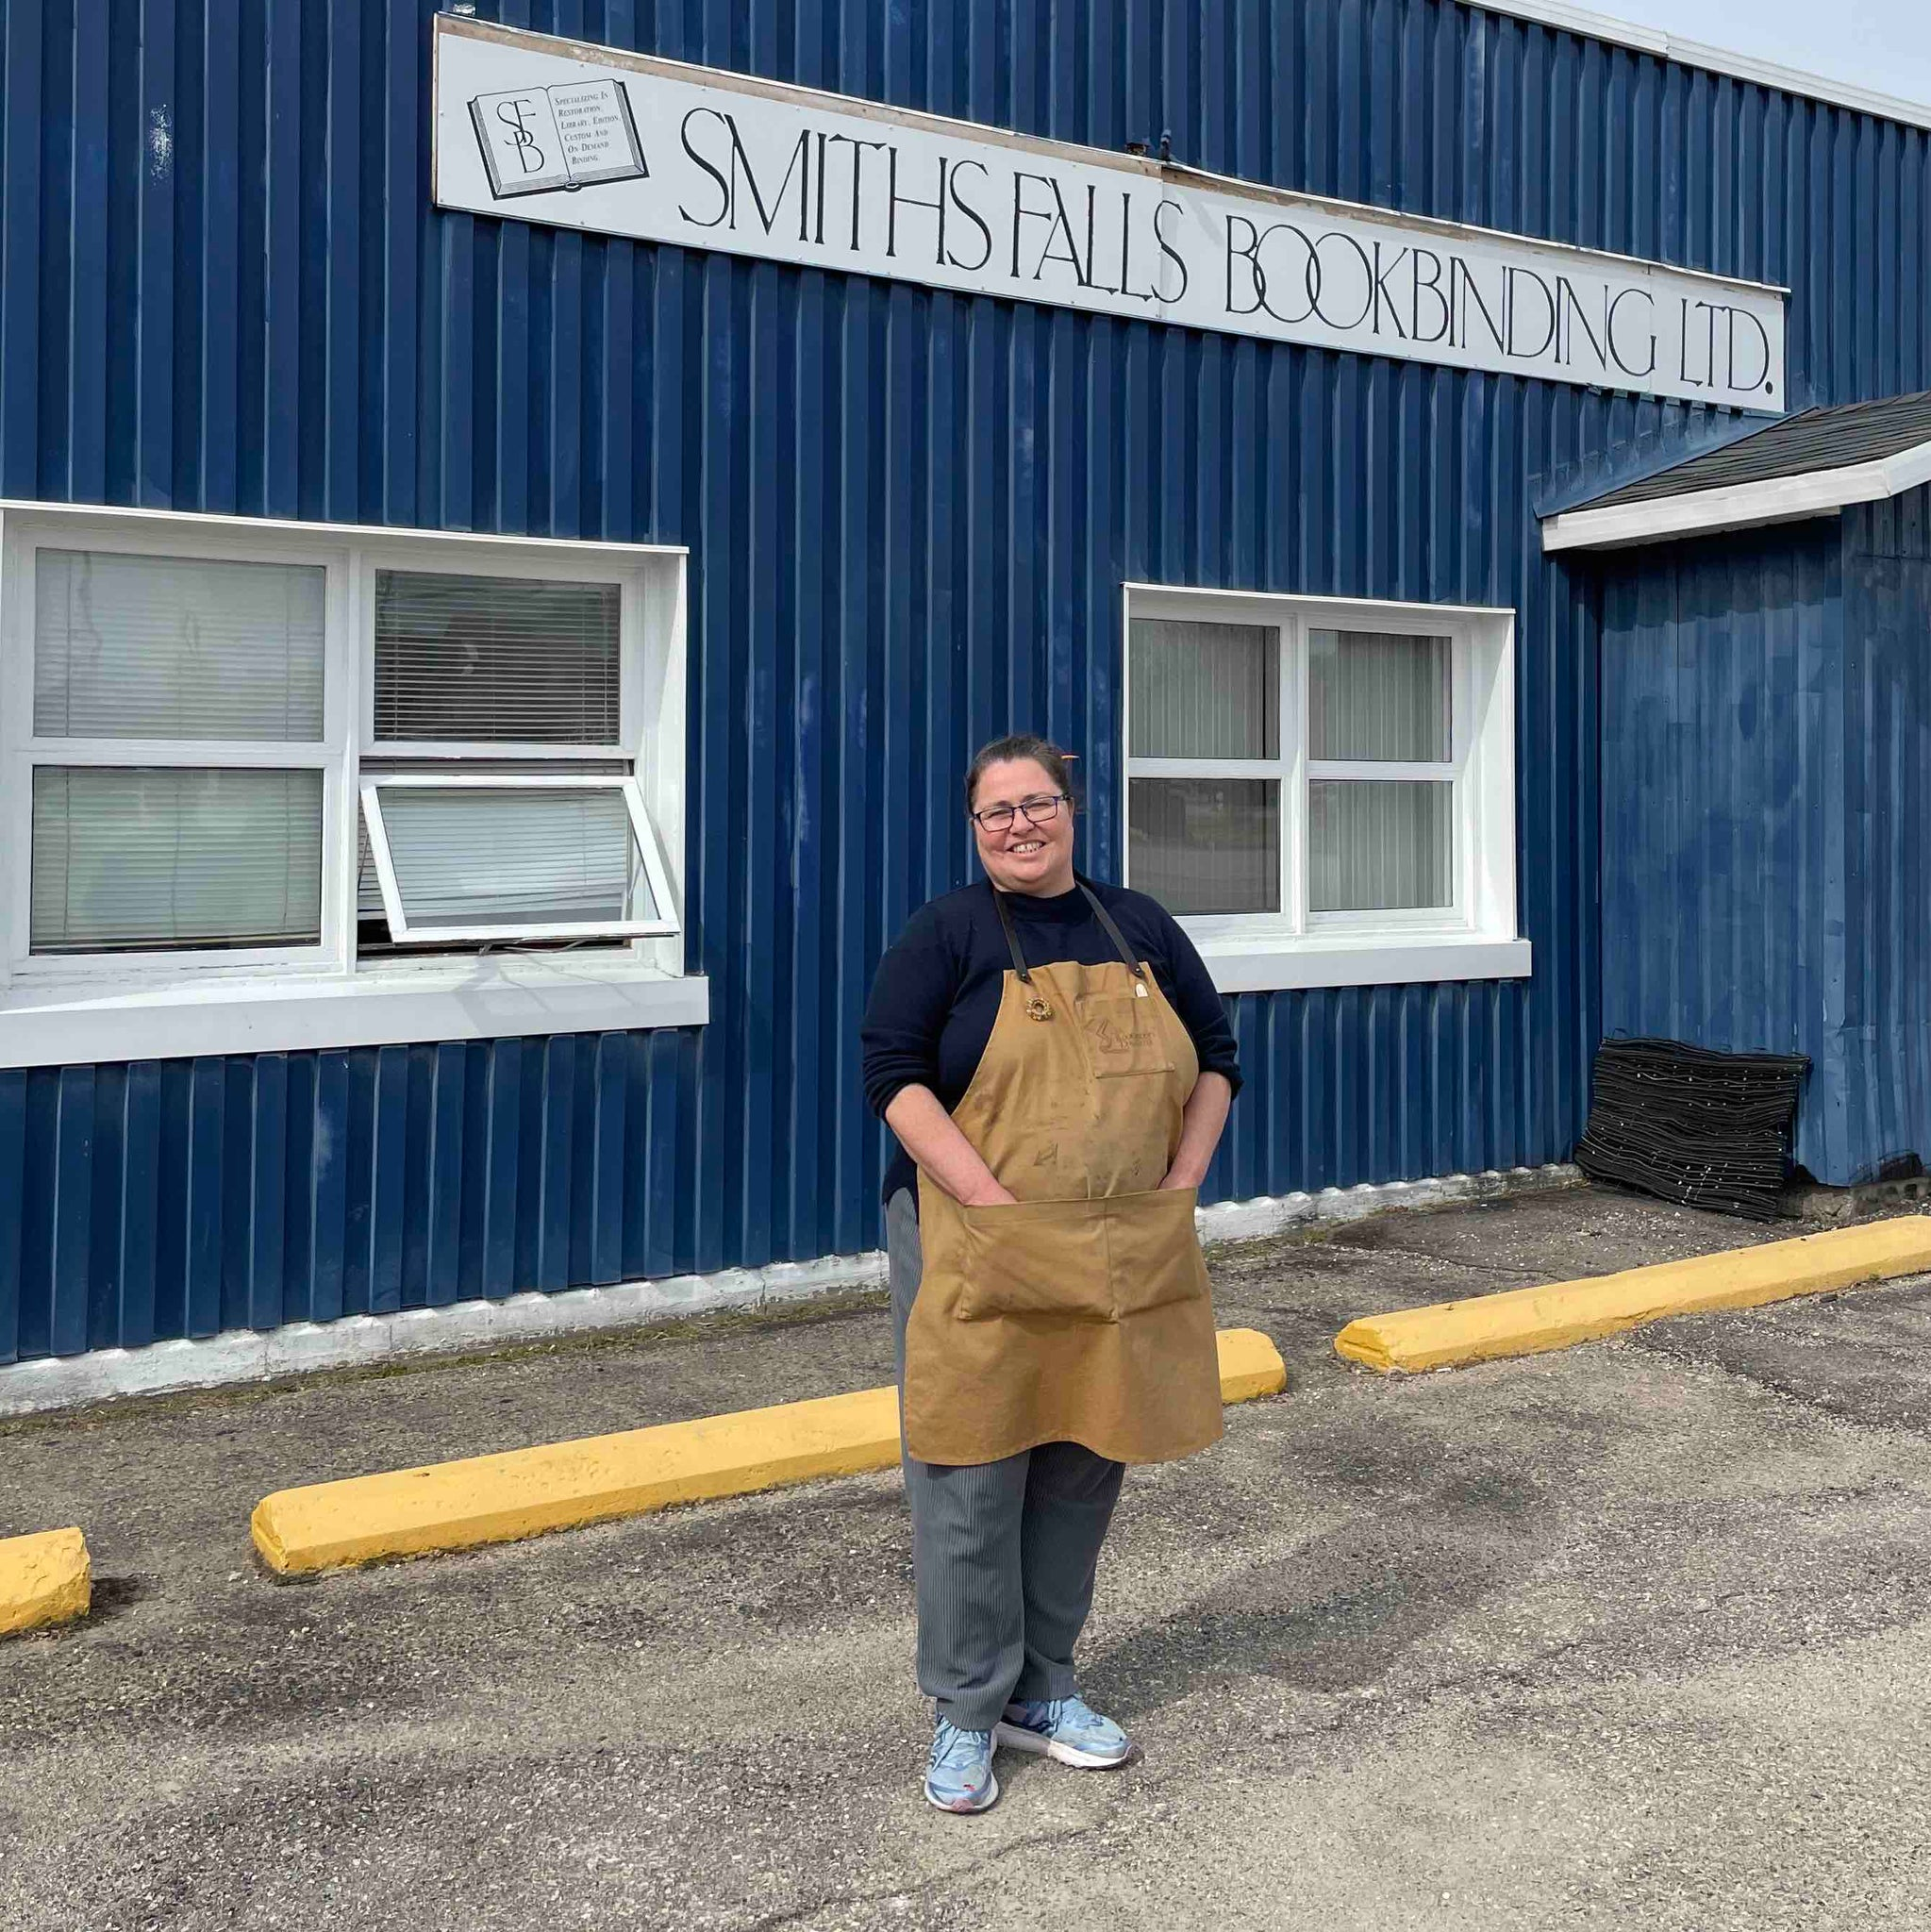 Laura Front of Her Shop In Parking Lot Windows Smiths Falls Bookbinding Blue Building